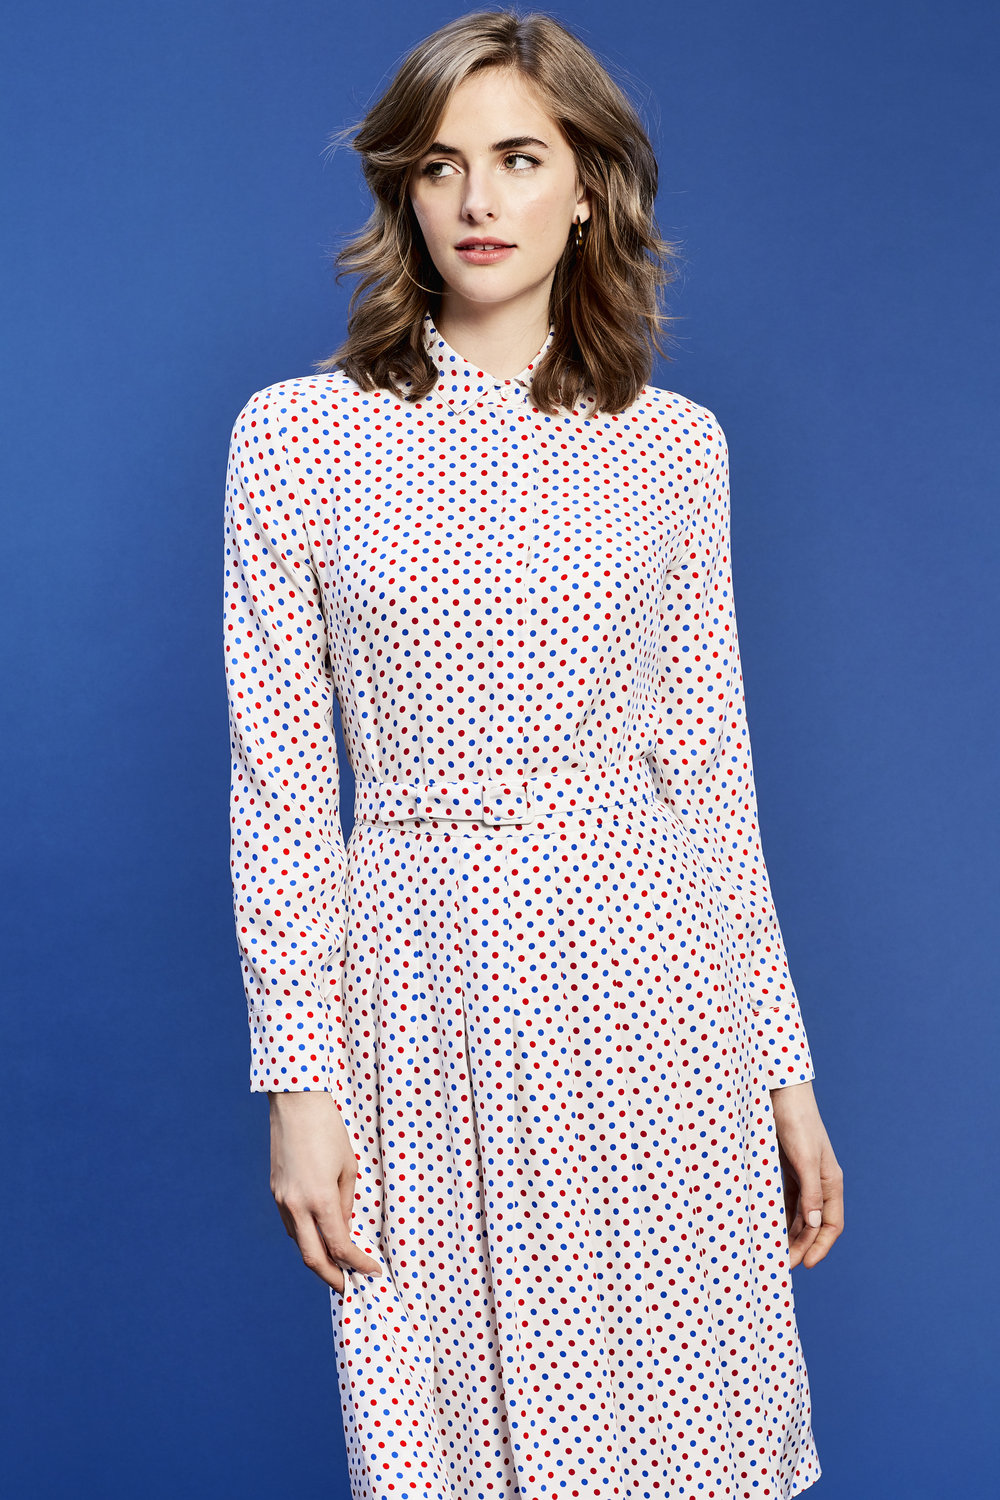 RED & BLUE POLKADOT - SHOP NOW